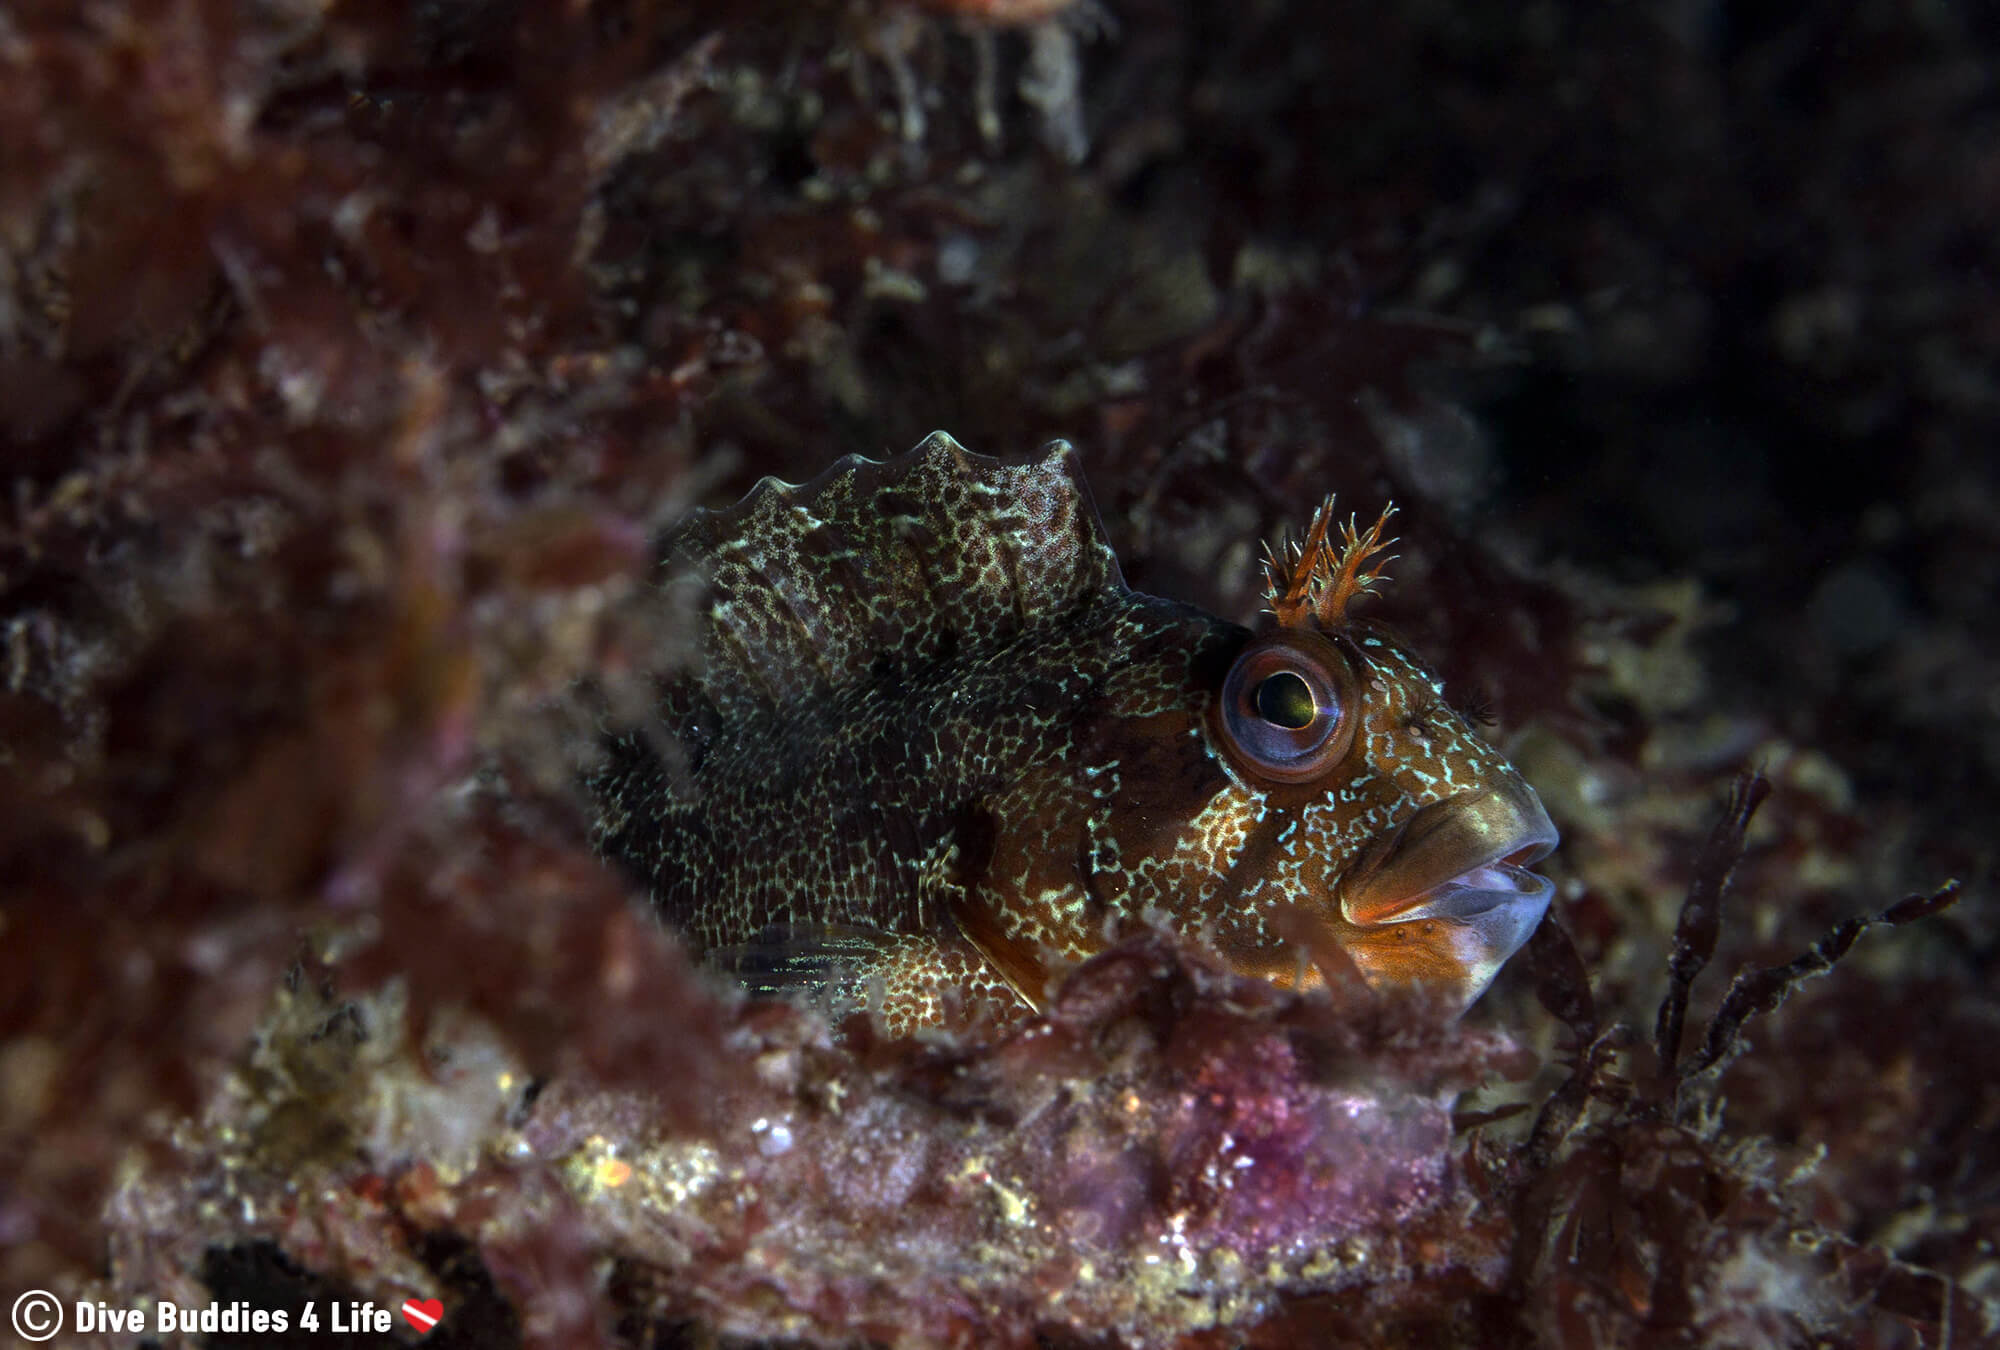 A Blenny In The Red Marine Plant Life Of Brest, Brittany, France